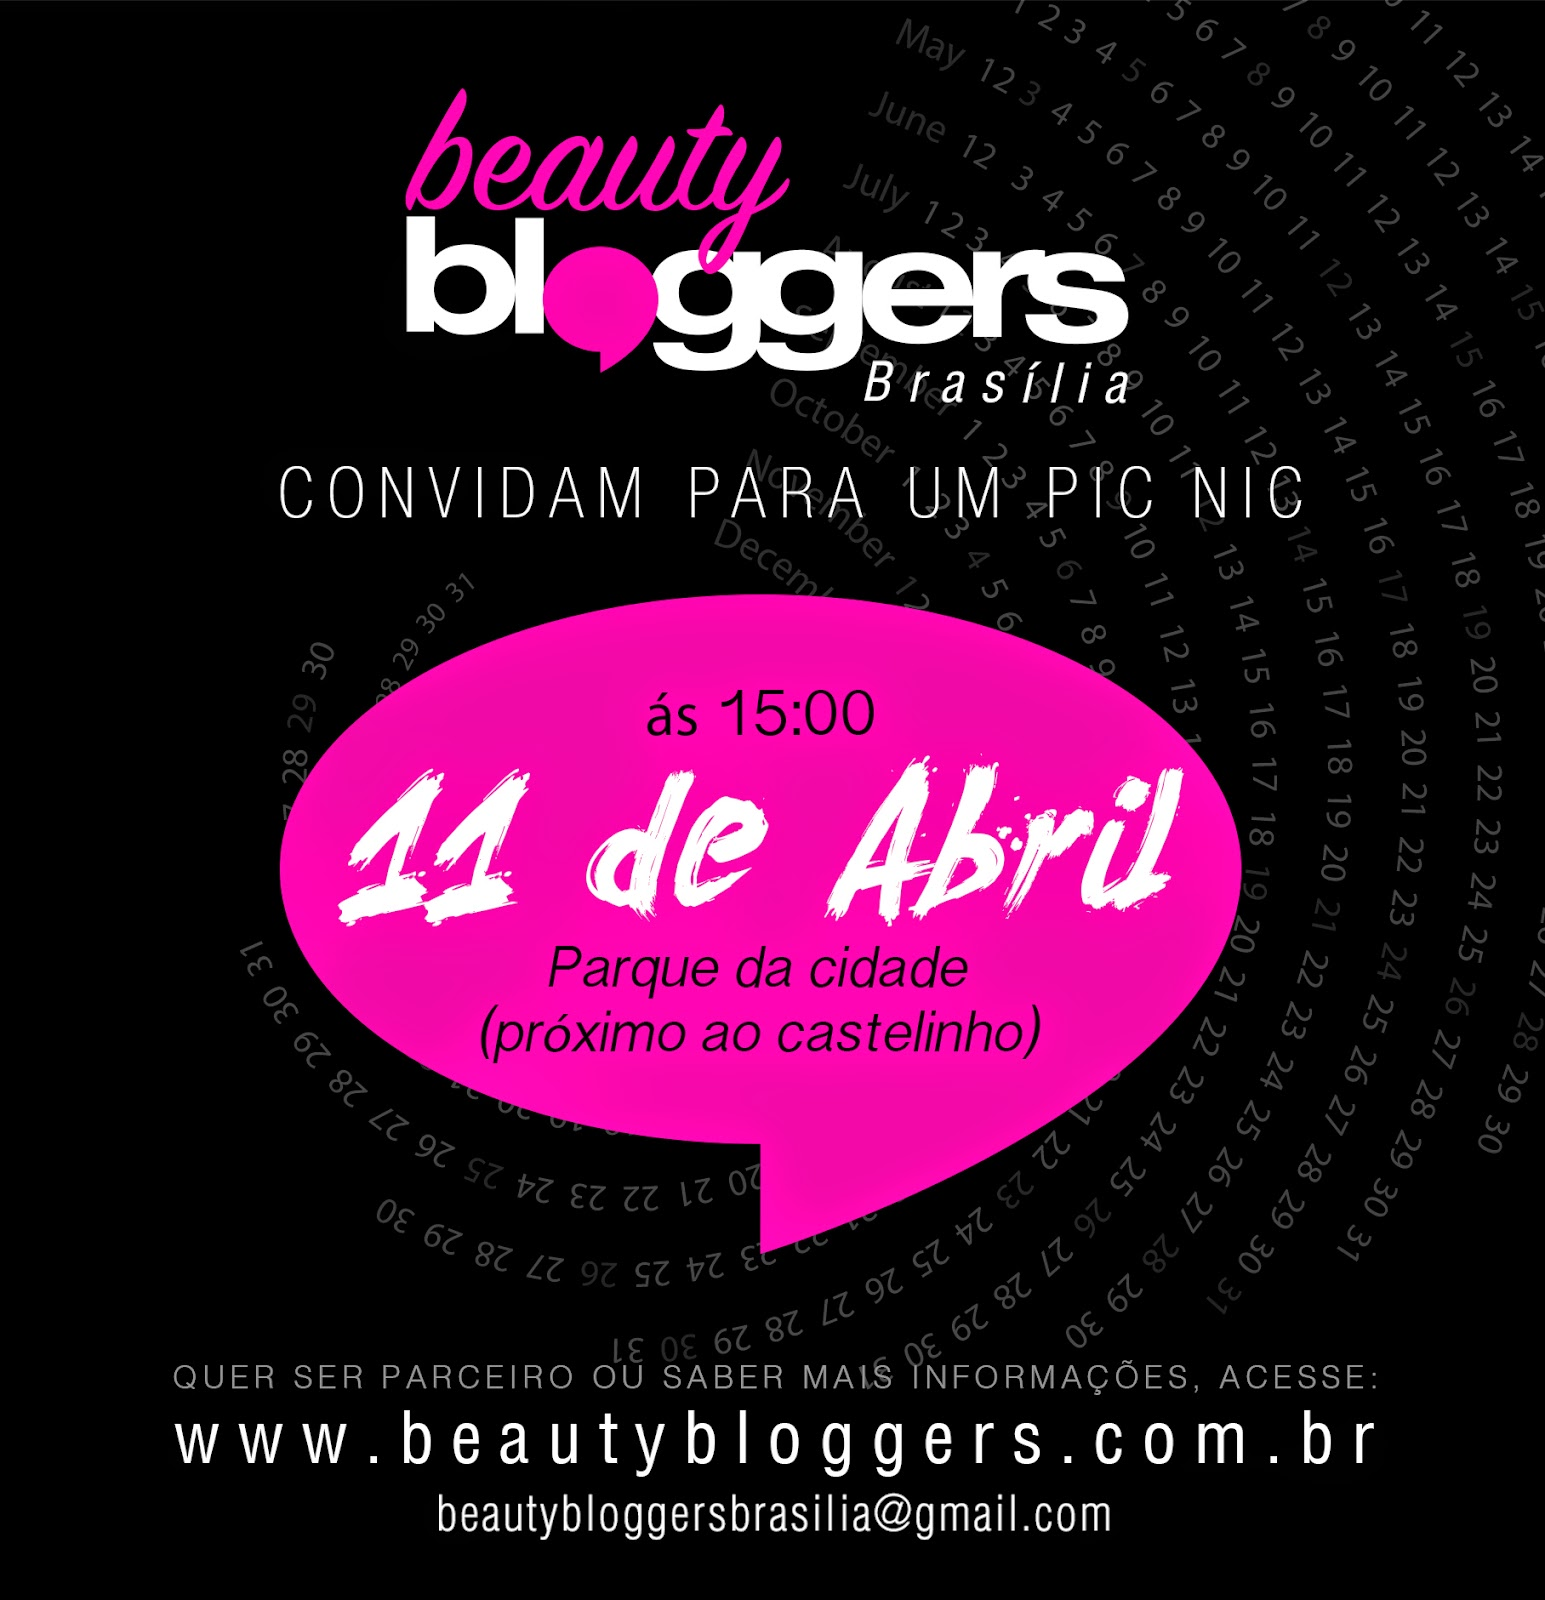 Pic Nic oficial das Beauty Bloggers Brasília